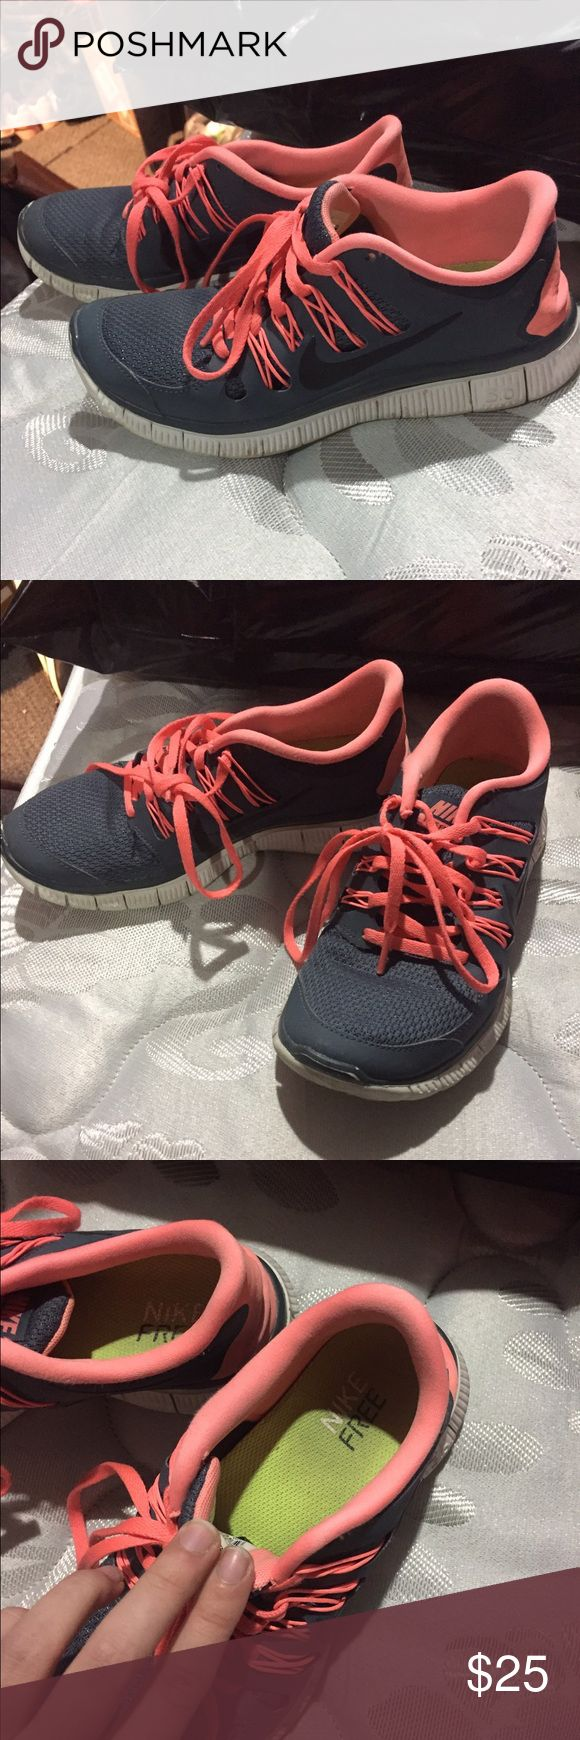 Gray and pink Nike shoes Barely worn! Just like the other pair! Please no lowballing! Nike Shoes Sneakers